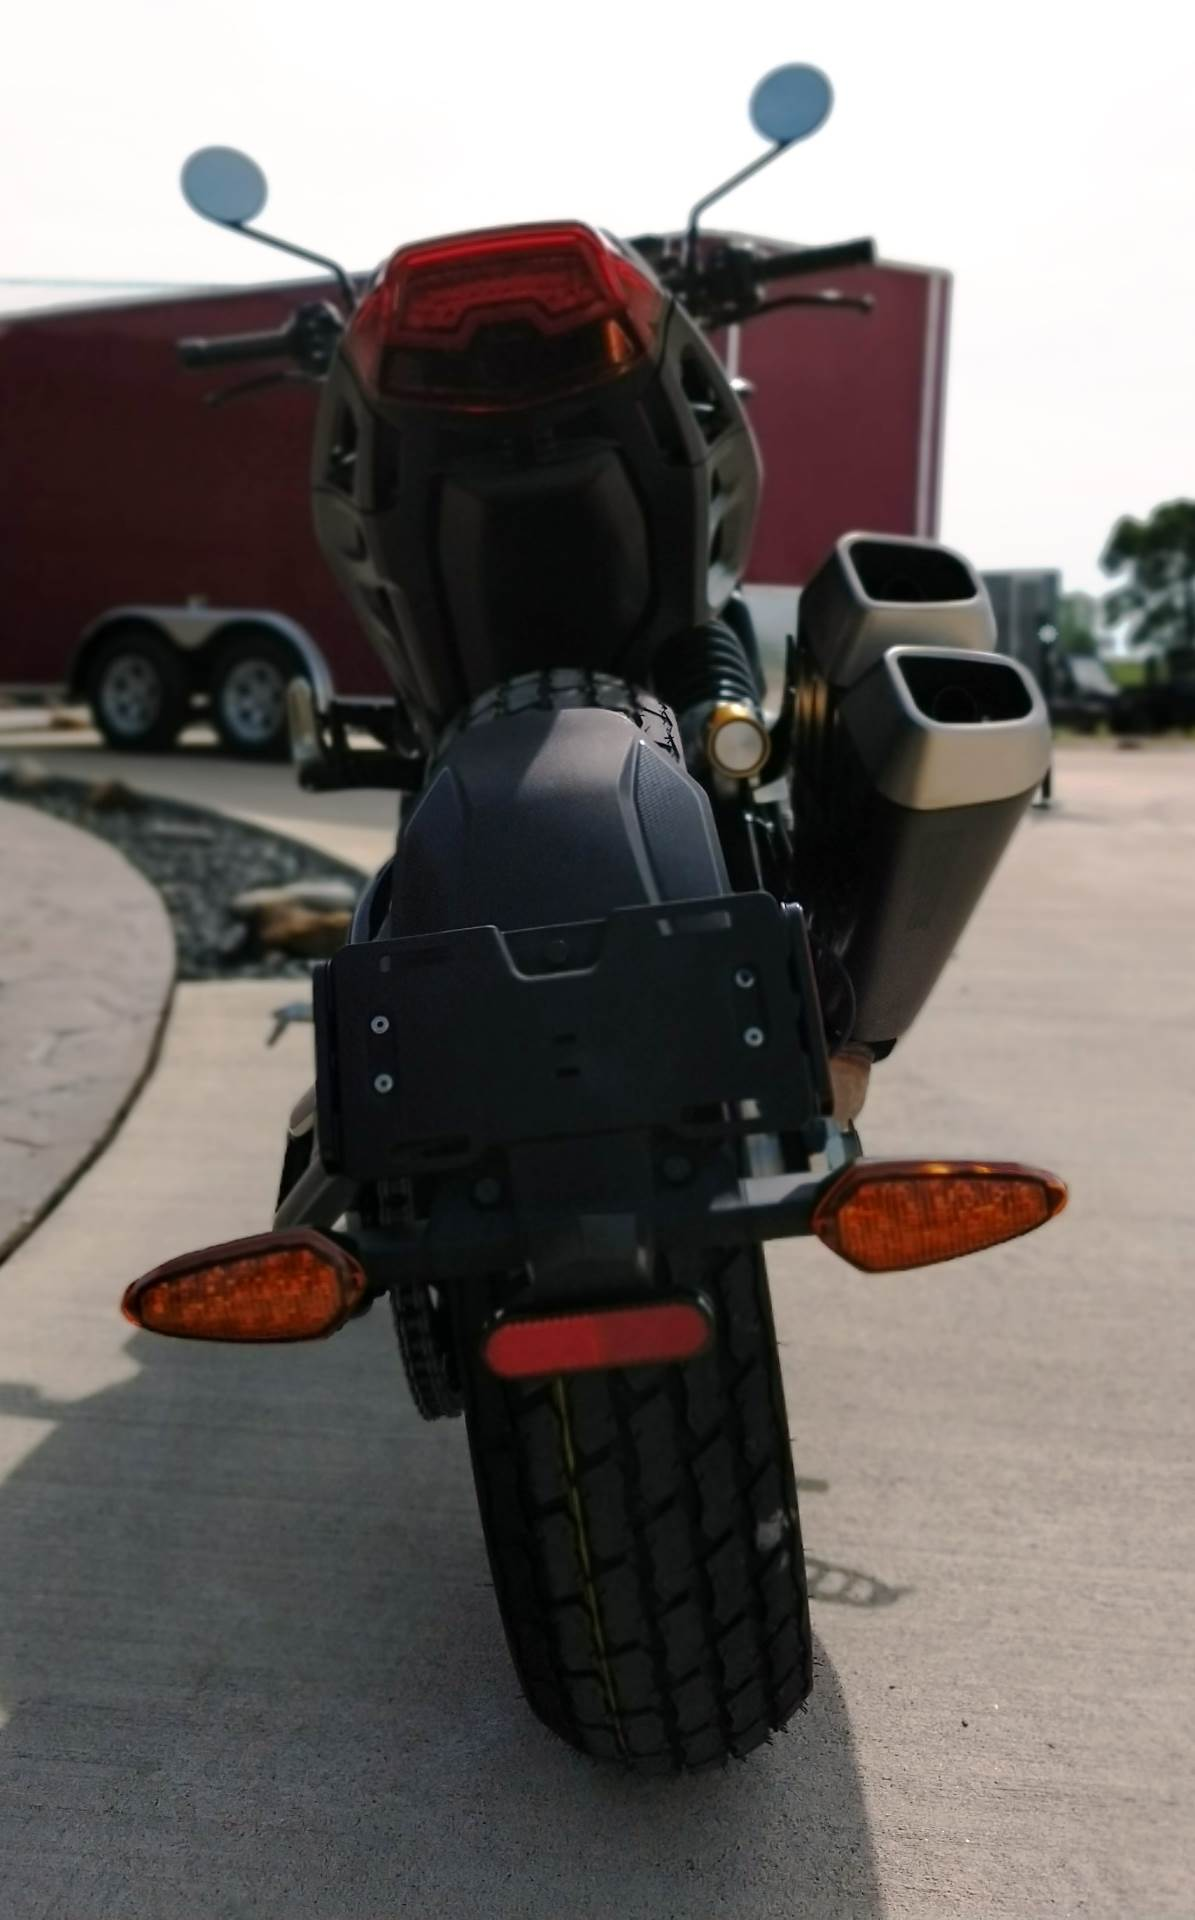 2019 Indian FTR™ 1200 S in Ottumwa, Iowa - Photo 8